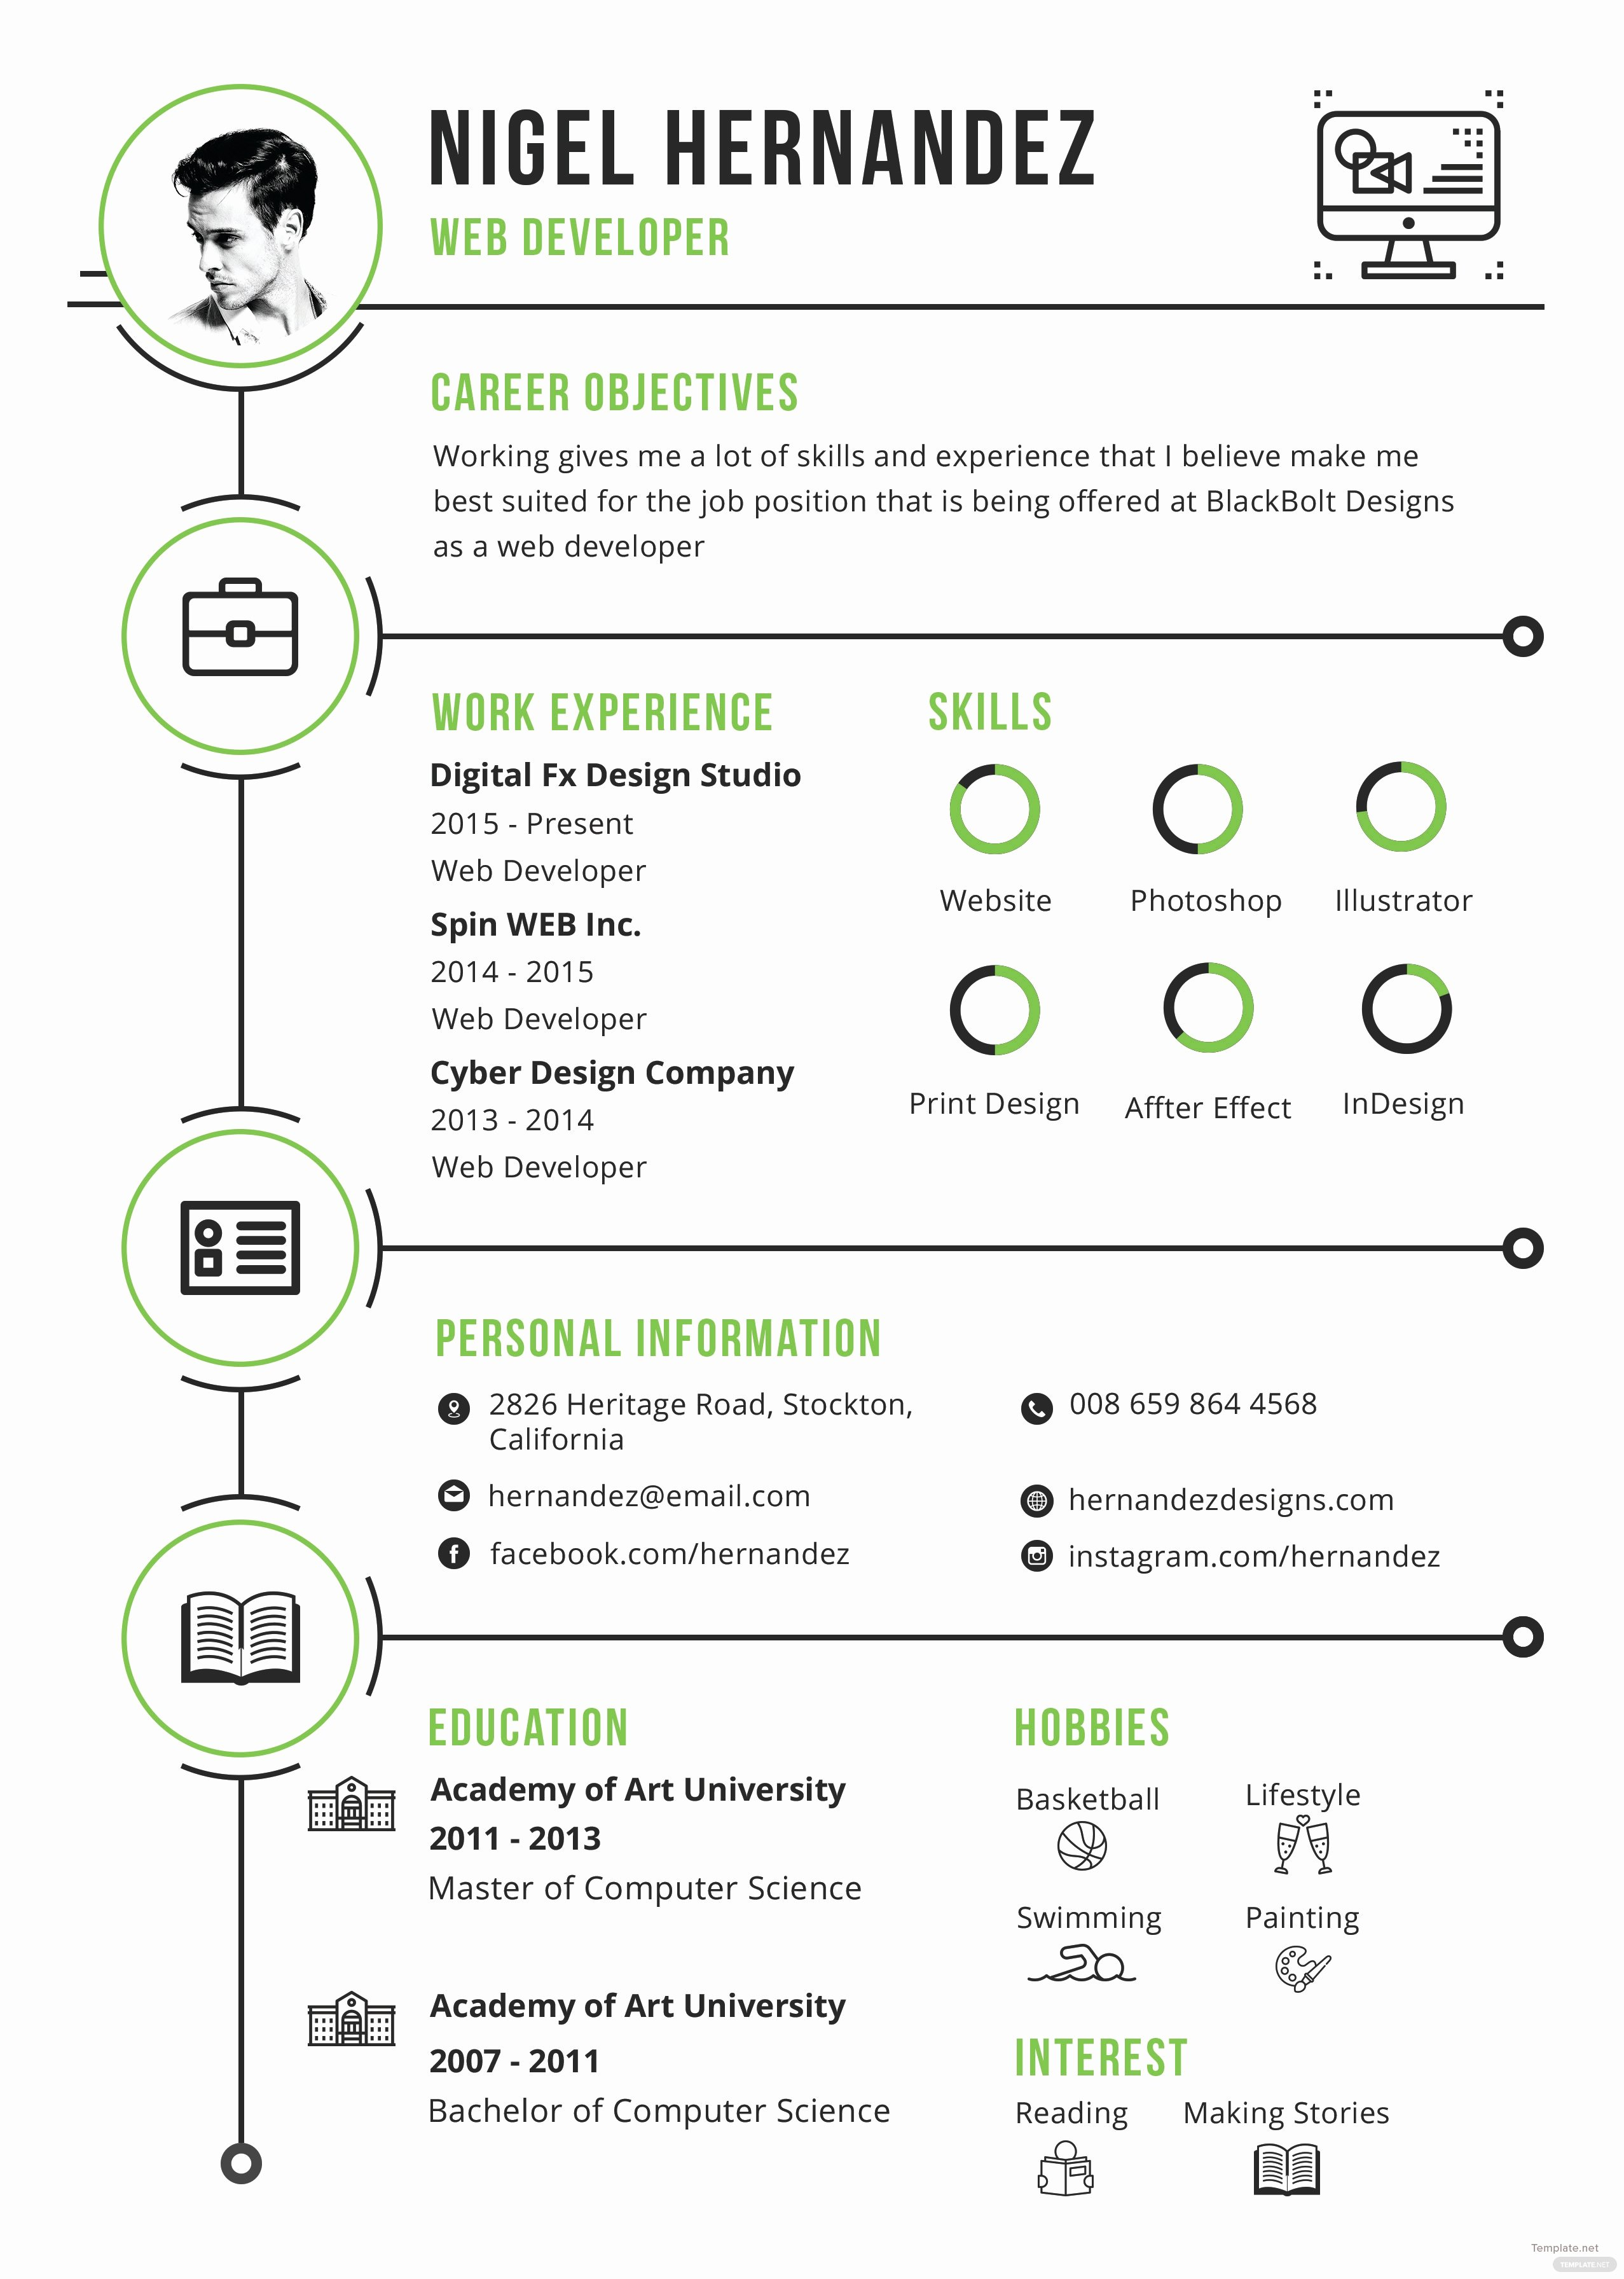 Infographic Resume Template Free Inspirational Free Minimalist Infographic Resume and Cv Template In